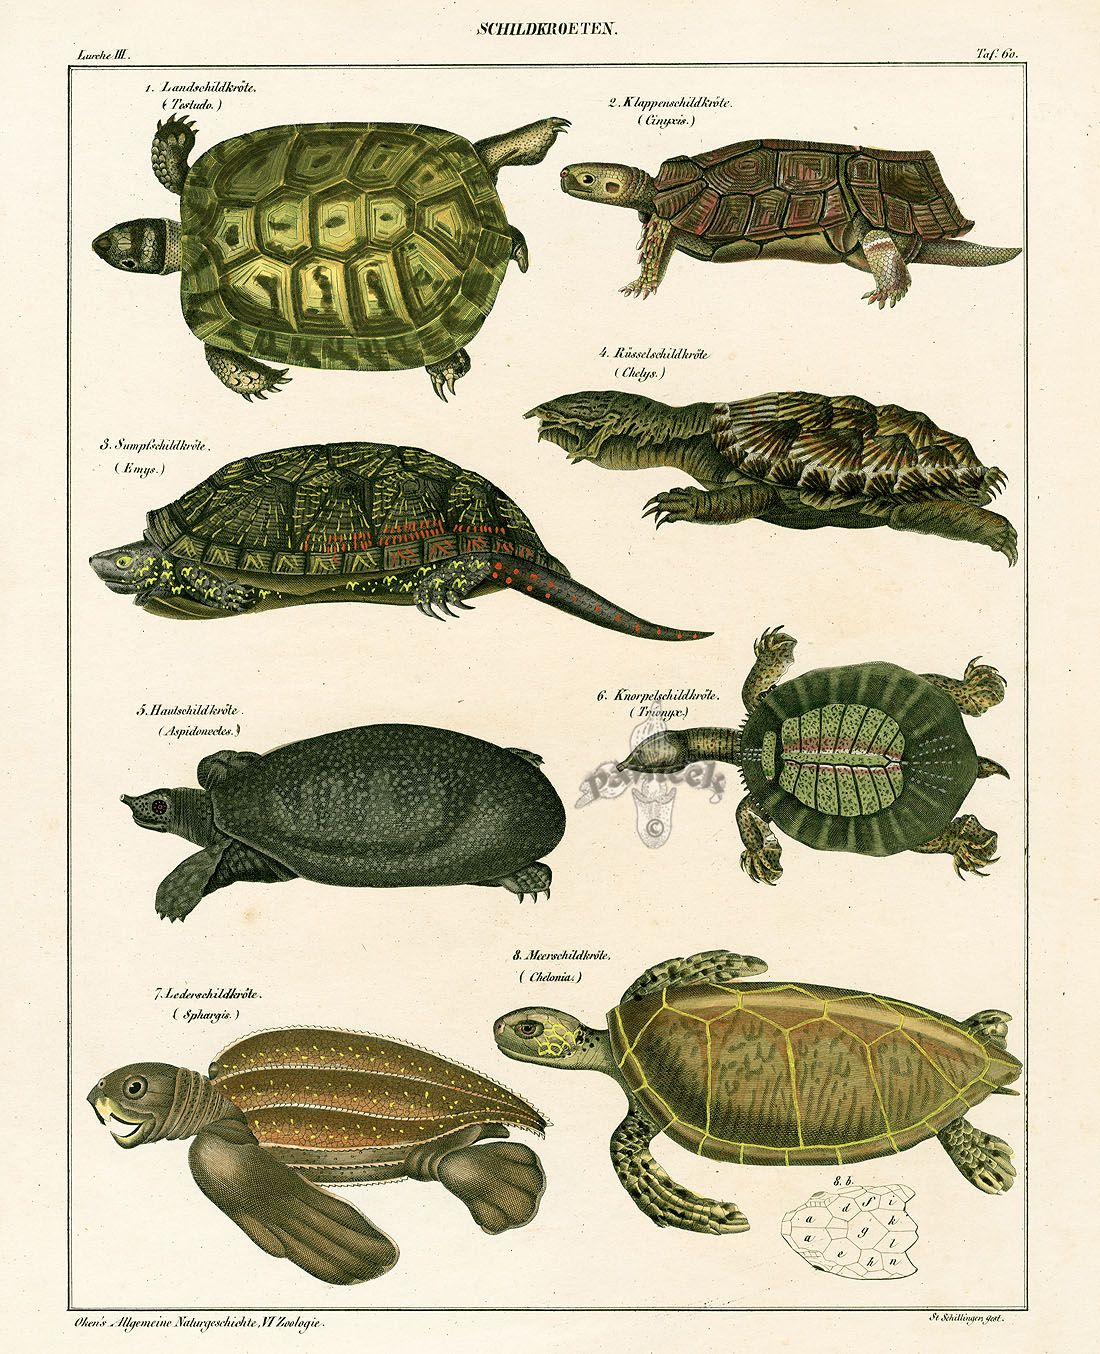 Turtle Shell Anatomy Diagram Leagoo Lead 6 Battery Oken Natural History Prints 1833 Sea Land Turtles